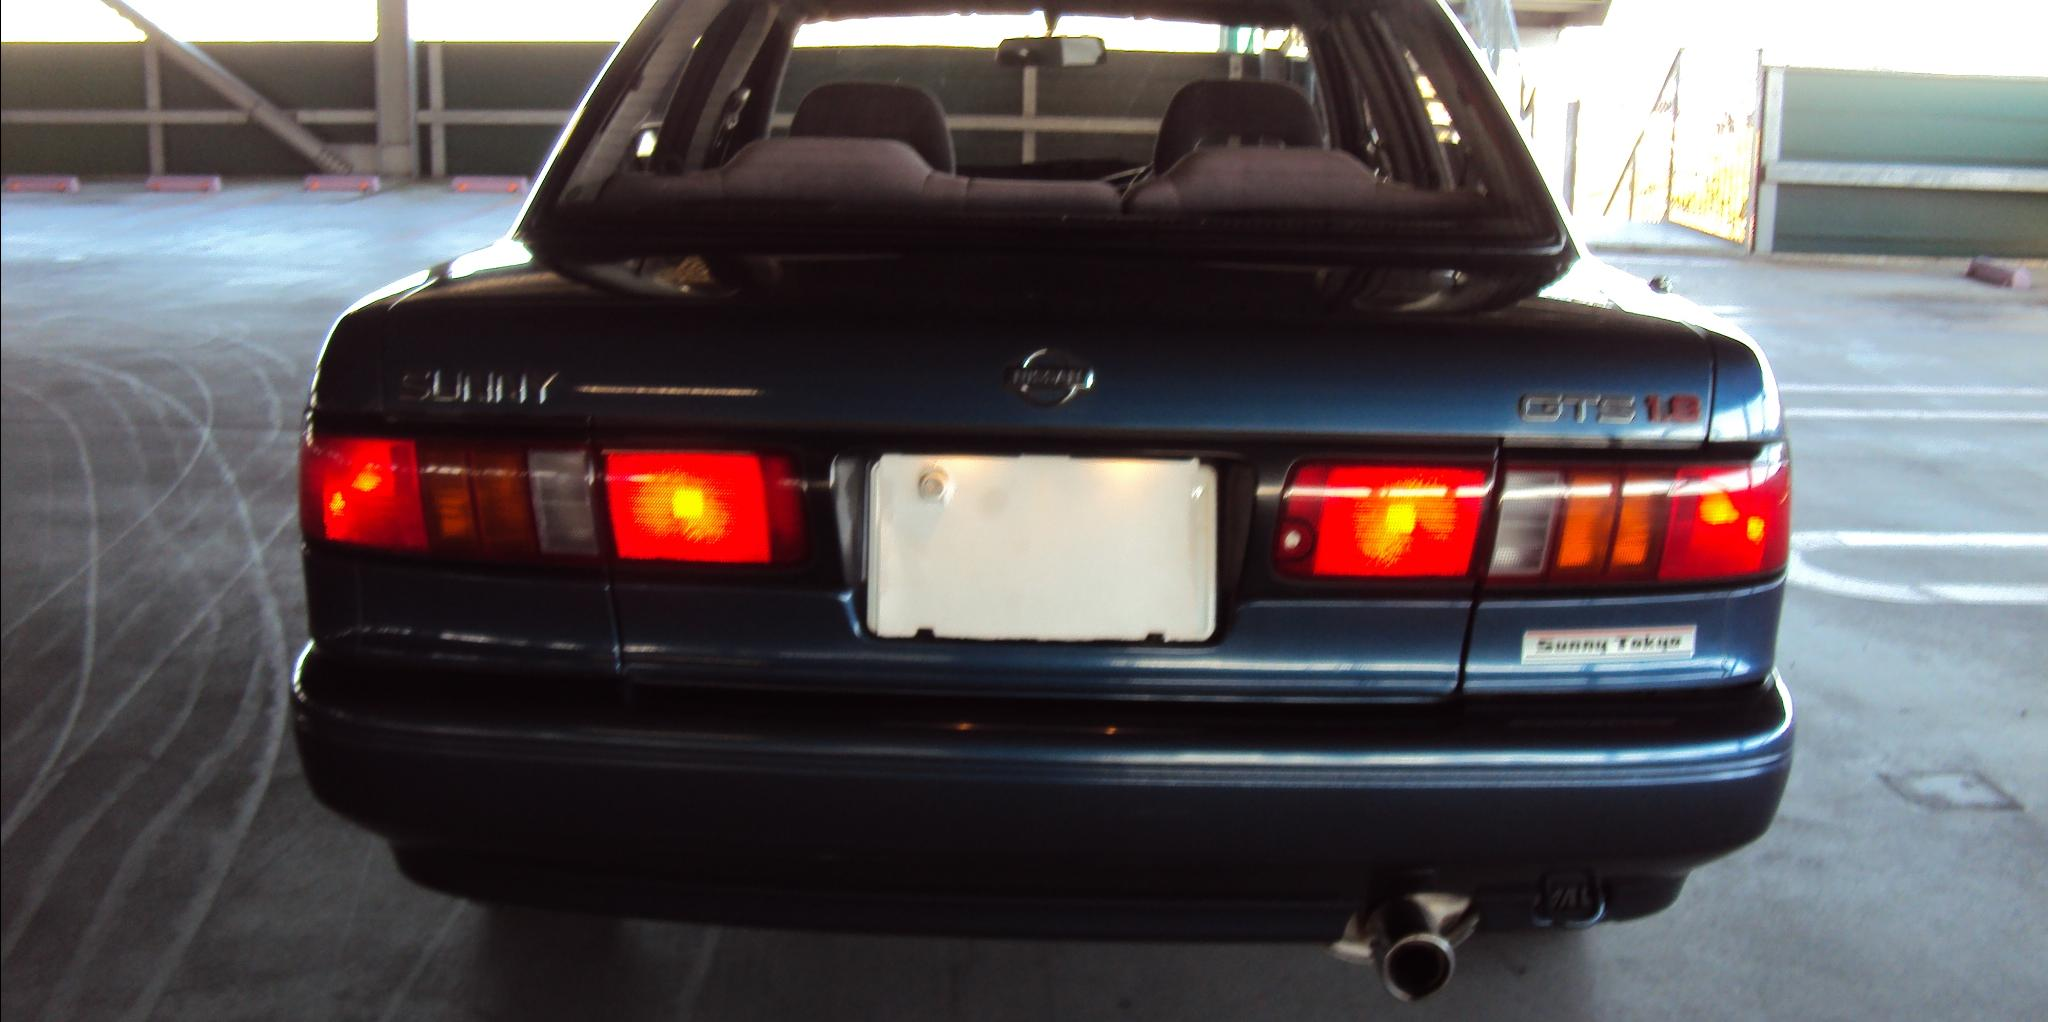 4drsr 1991 Nissan Sunny Specs, Photos, Modification Info ...